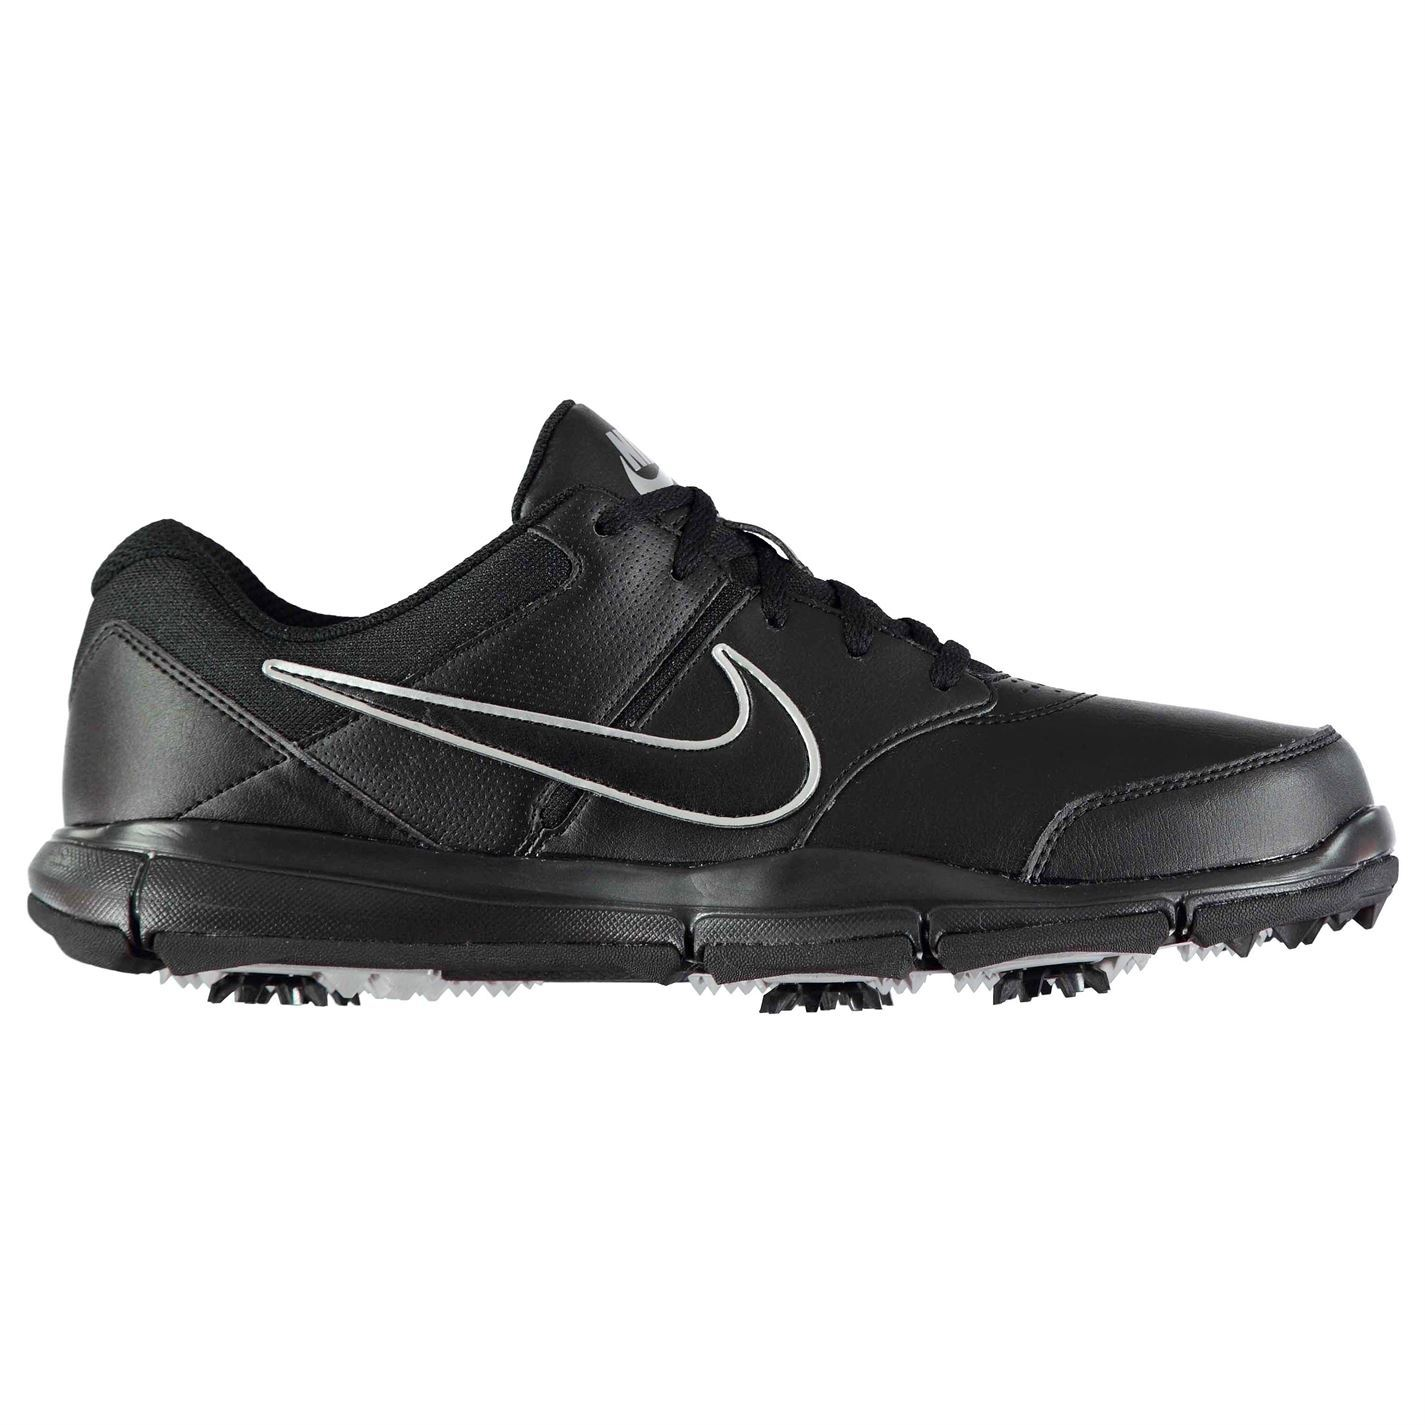 Nike-Durasport-4-Spiked-Golf-Shoes-Mens-Spikes-Footwear thumbnail 12